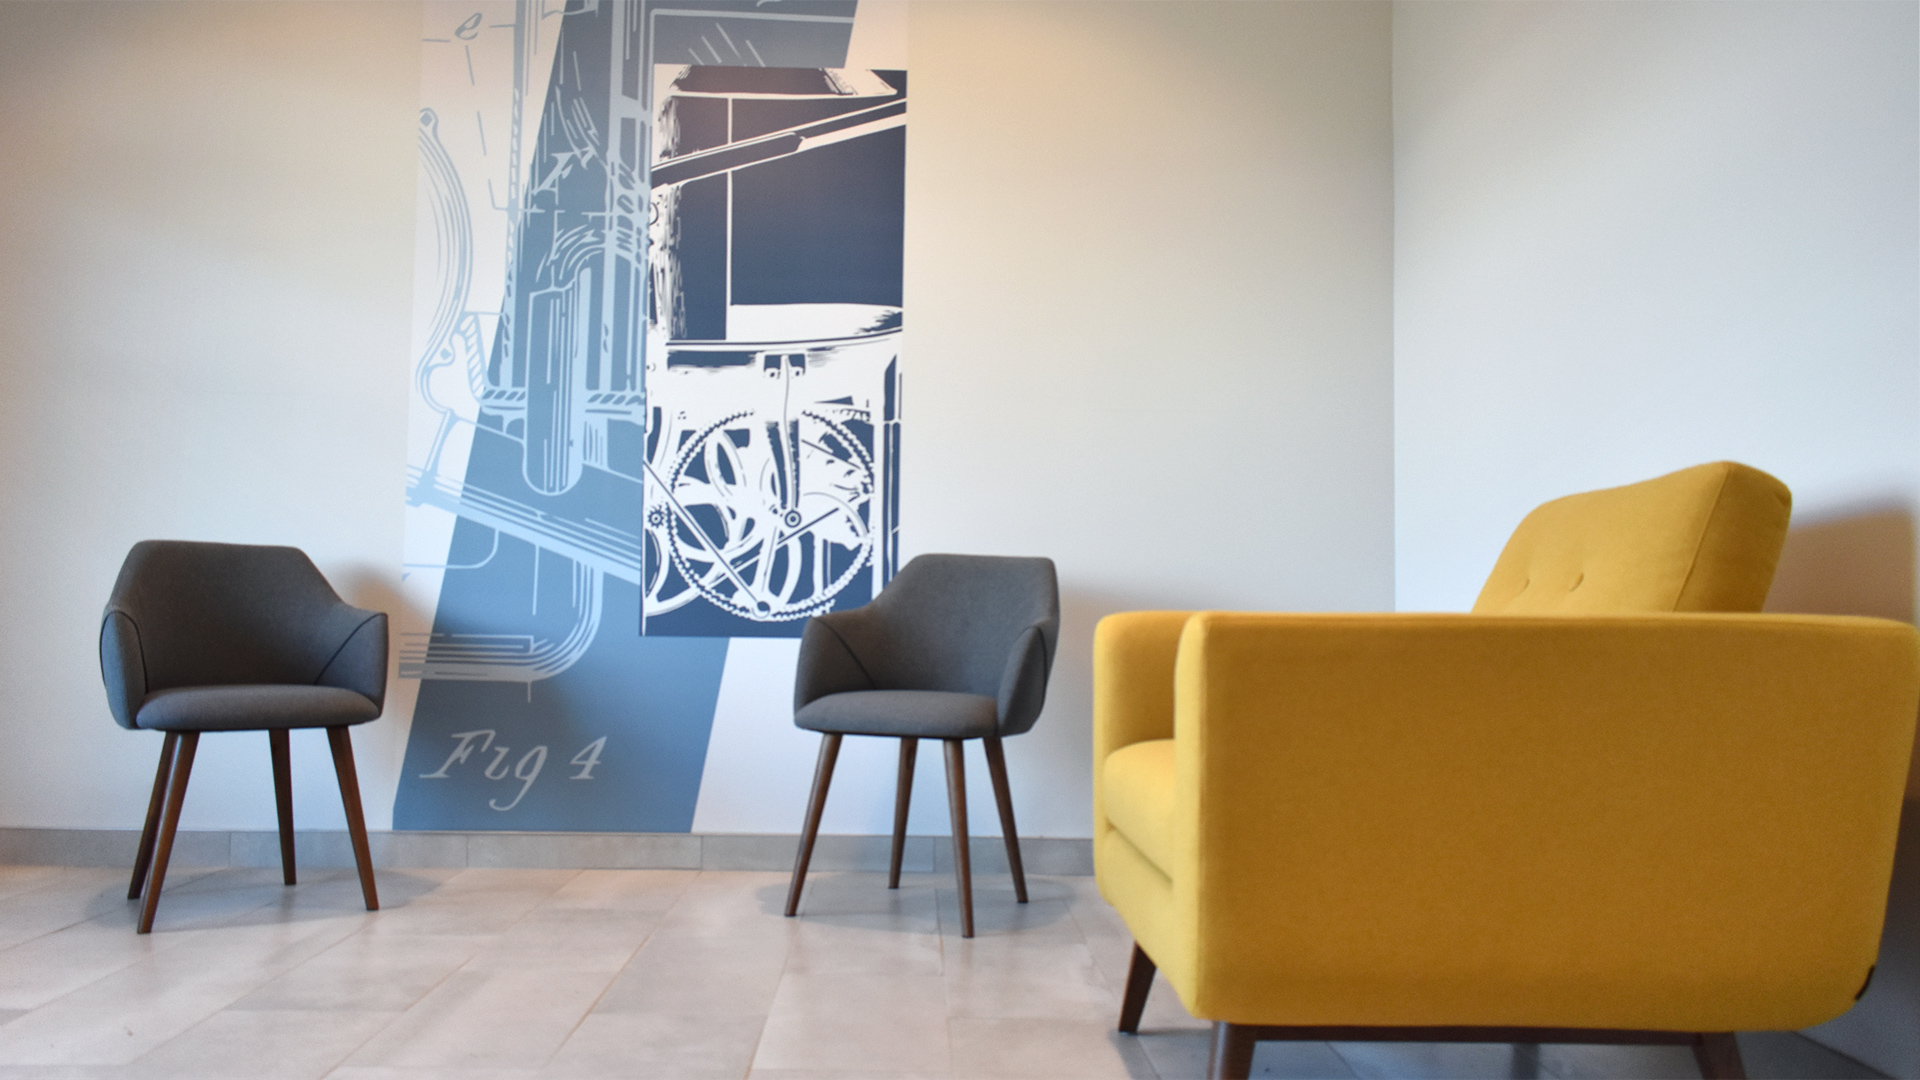 The wall murals and interior design in The Forge Apartment's lounge work together to create a comfortable, yet modern branded space